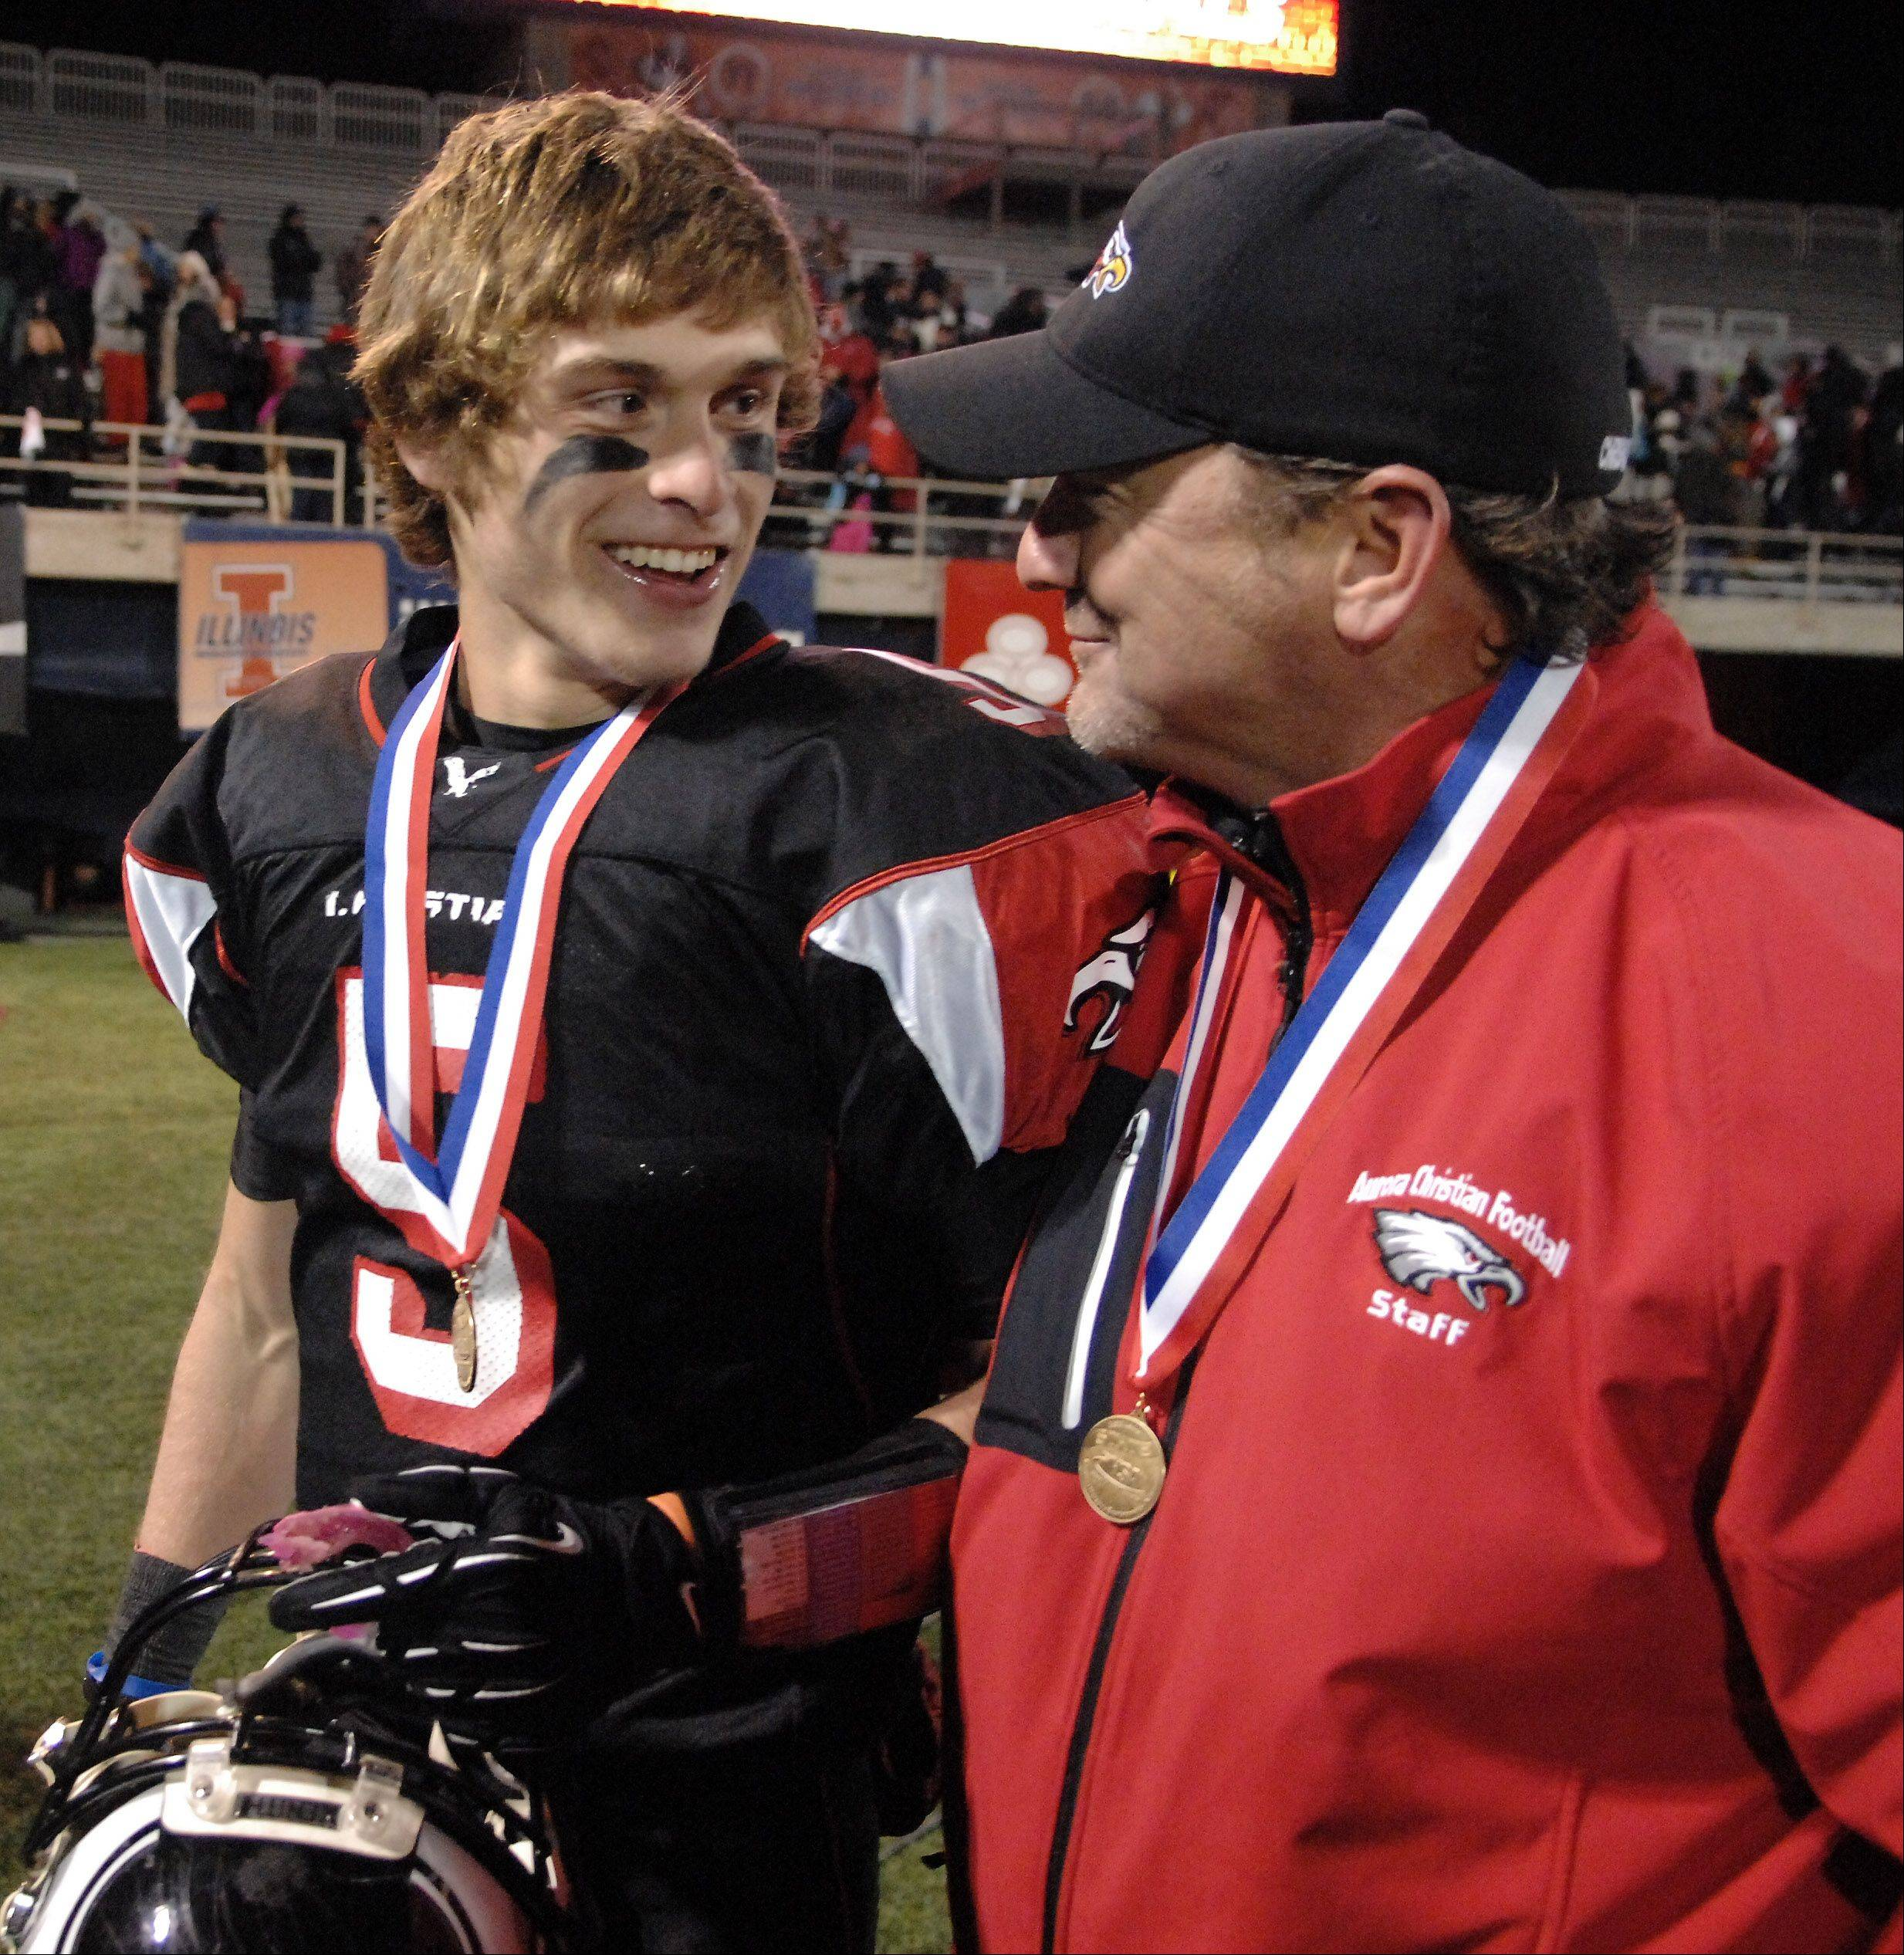 Rick West/rwest@dailyherald.comAurora Christian's Noah Roberts and coach Don Beebe share a moment after the trophy presentation following their win over Tolono Unity during Friday's Class 3A state championship game at Memorial Stadium in Champaign.